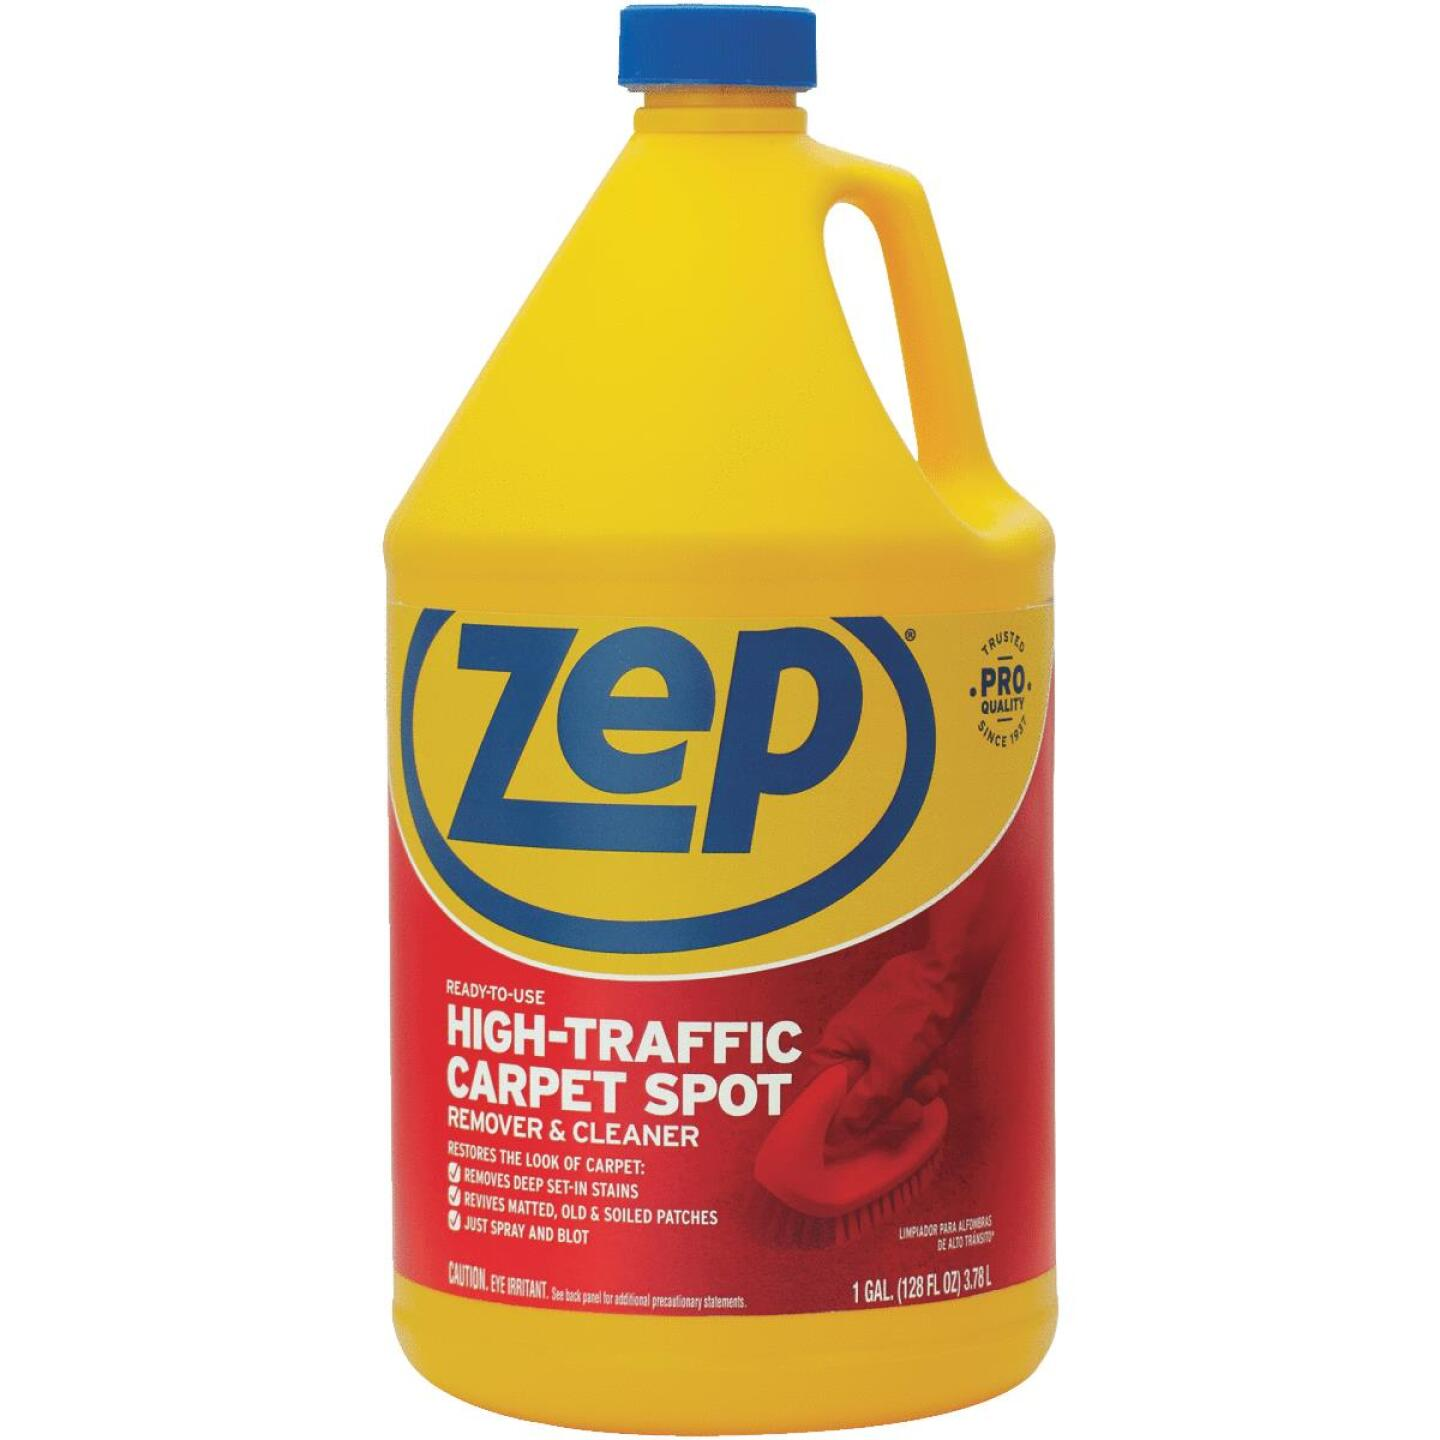 Zep Commercial 1 Gal. High Traffic Carpet Cleaner Image 1